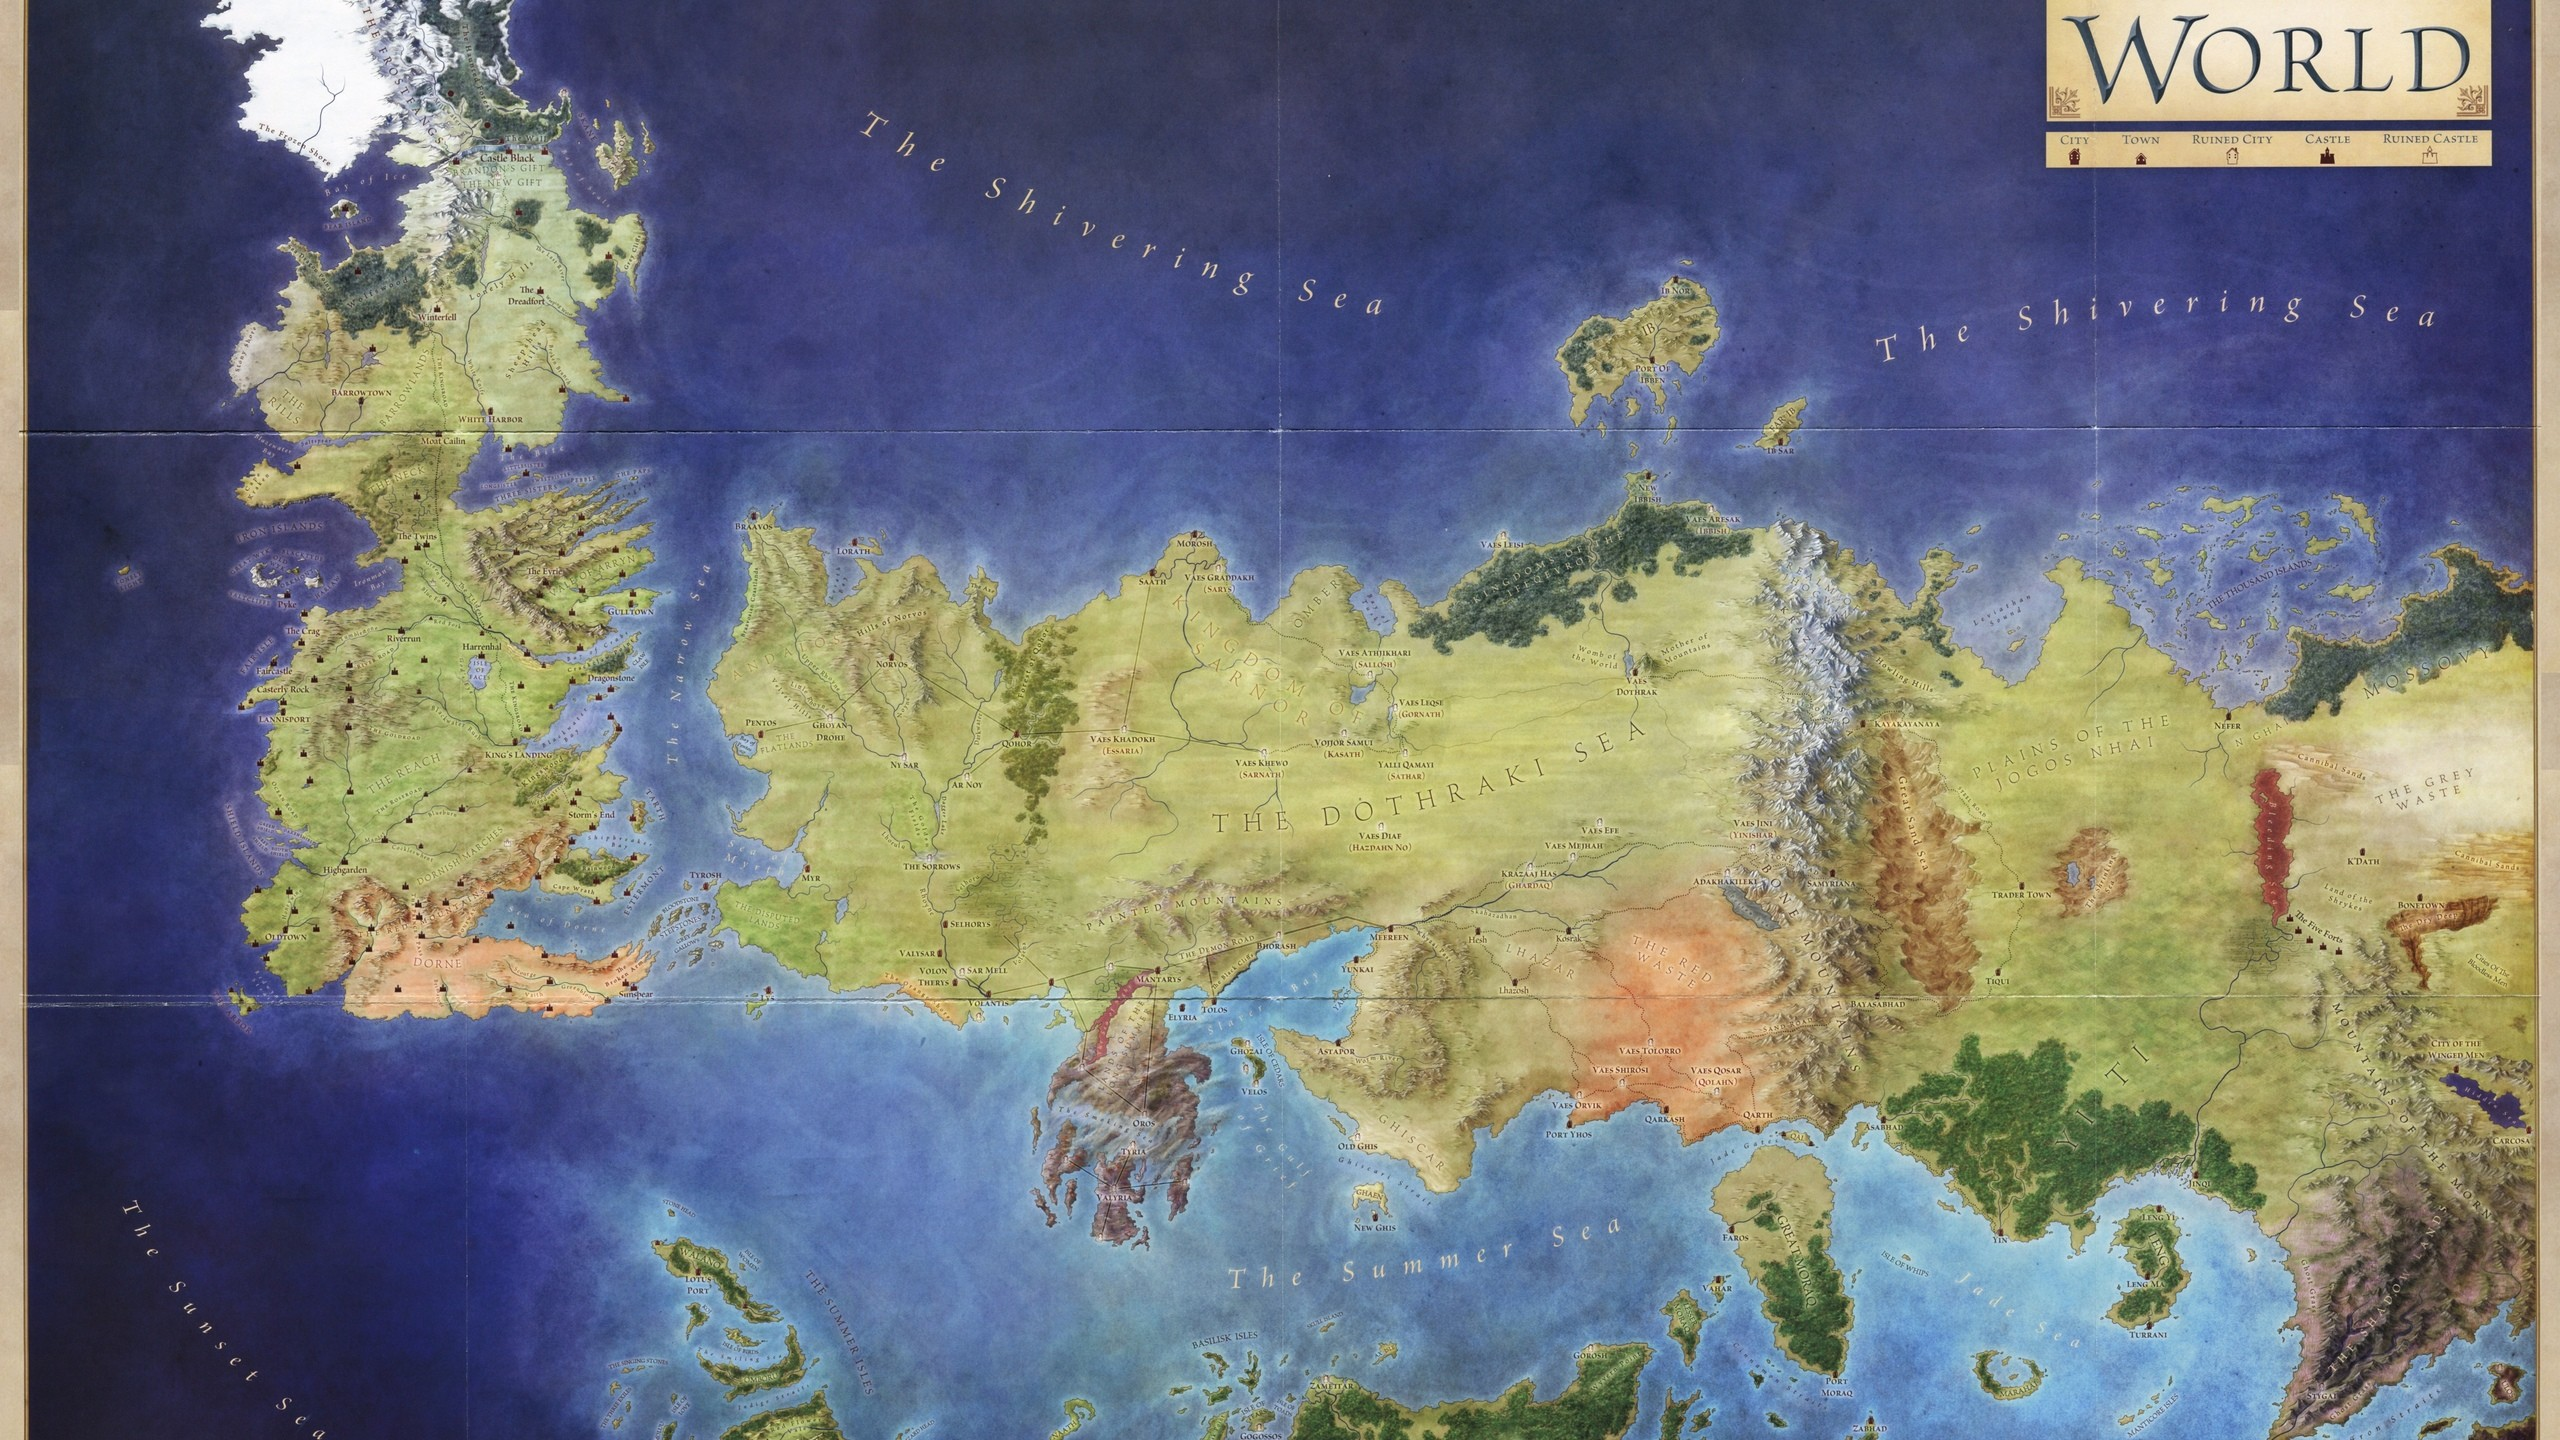 If you buy the Lands of Ice and Fire it comes with a colour version of this  map.